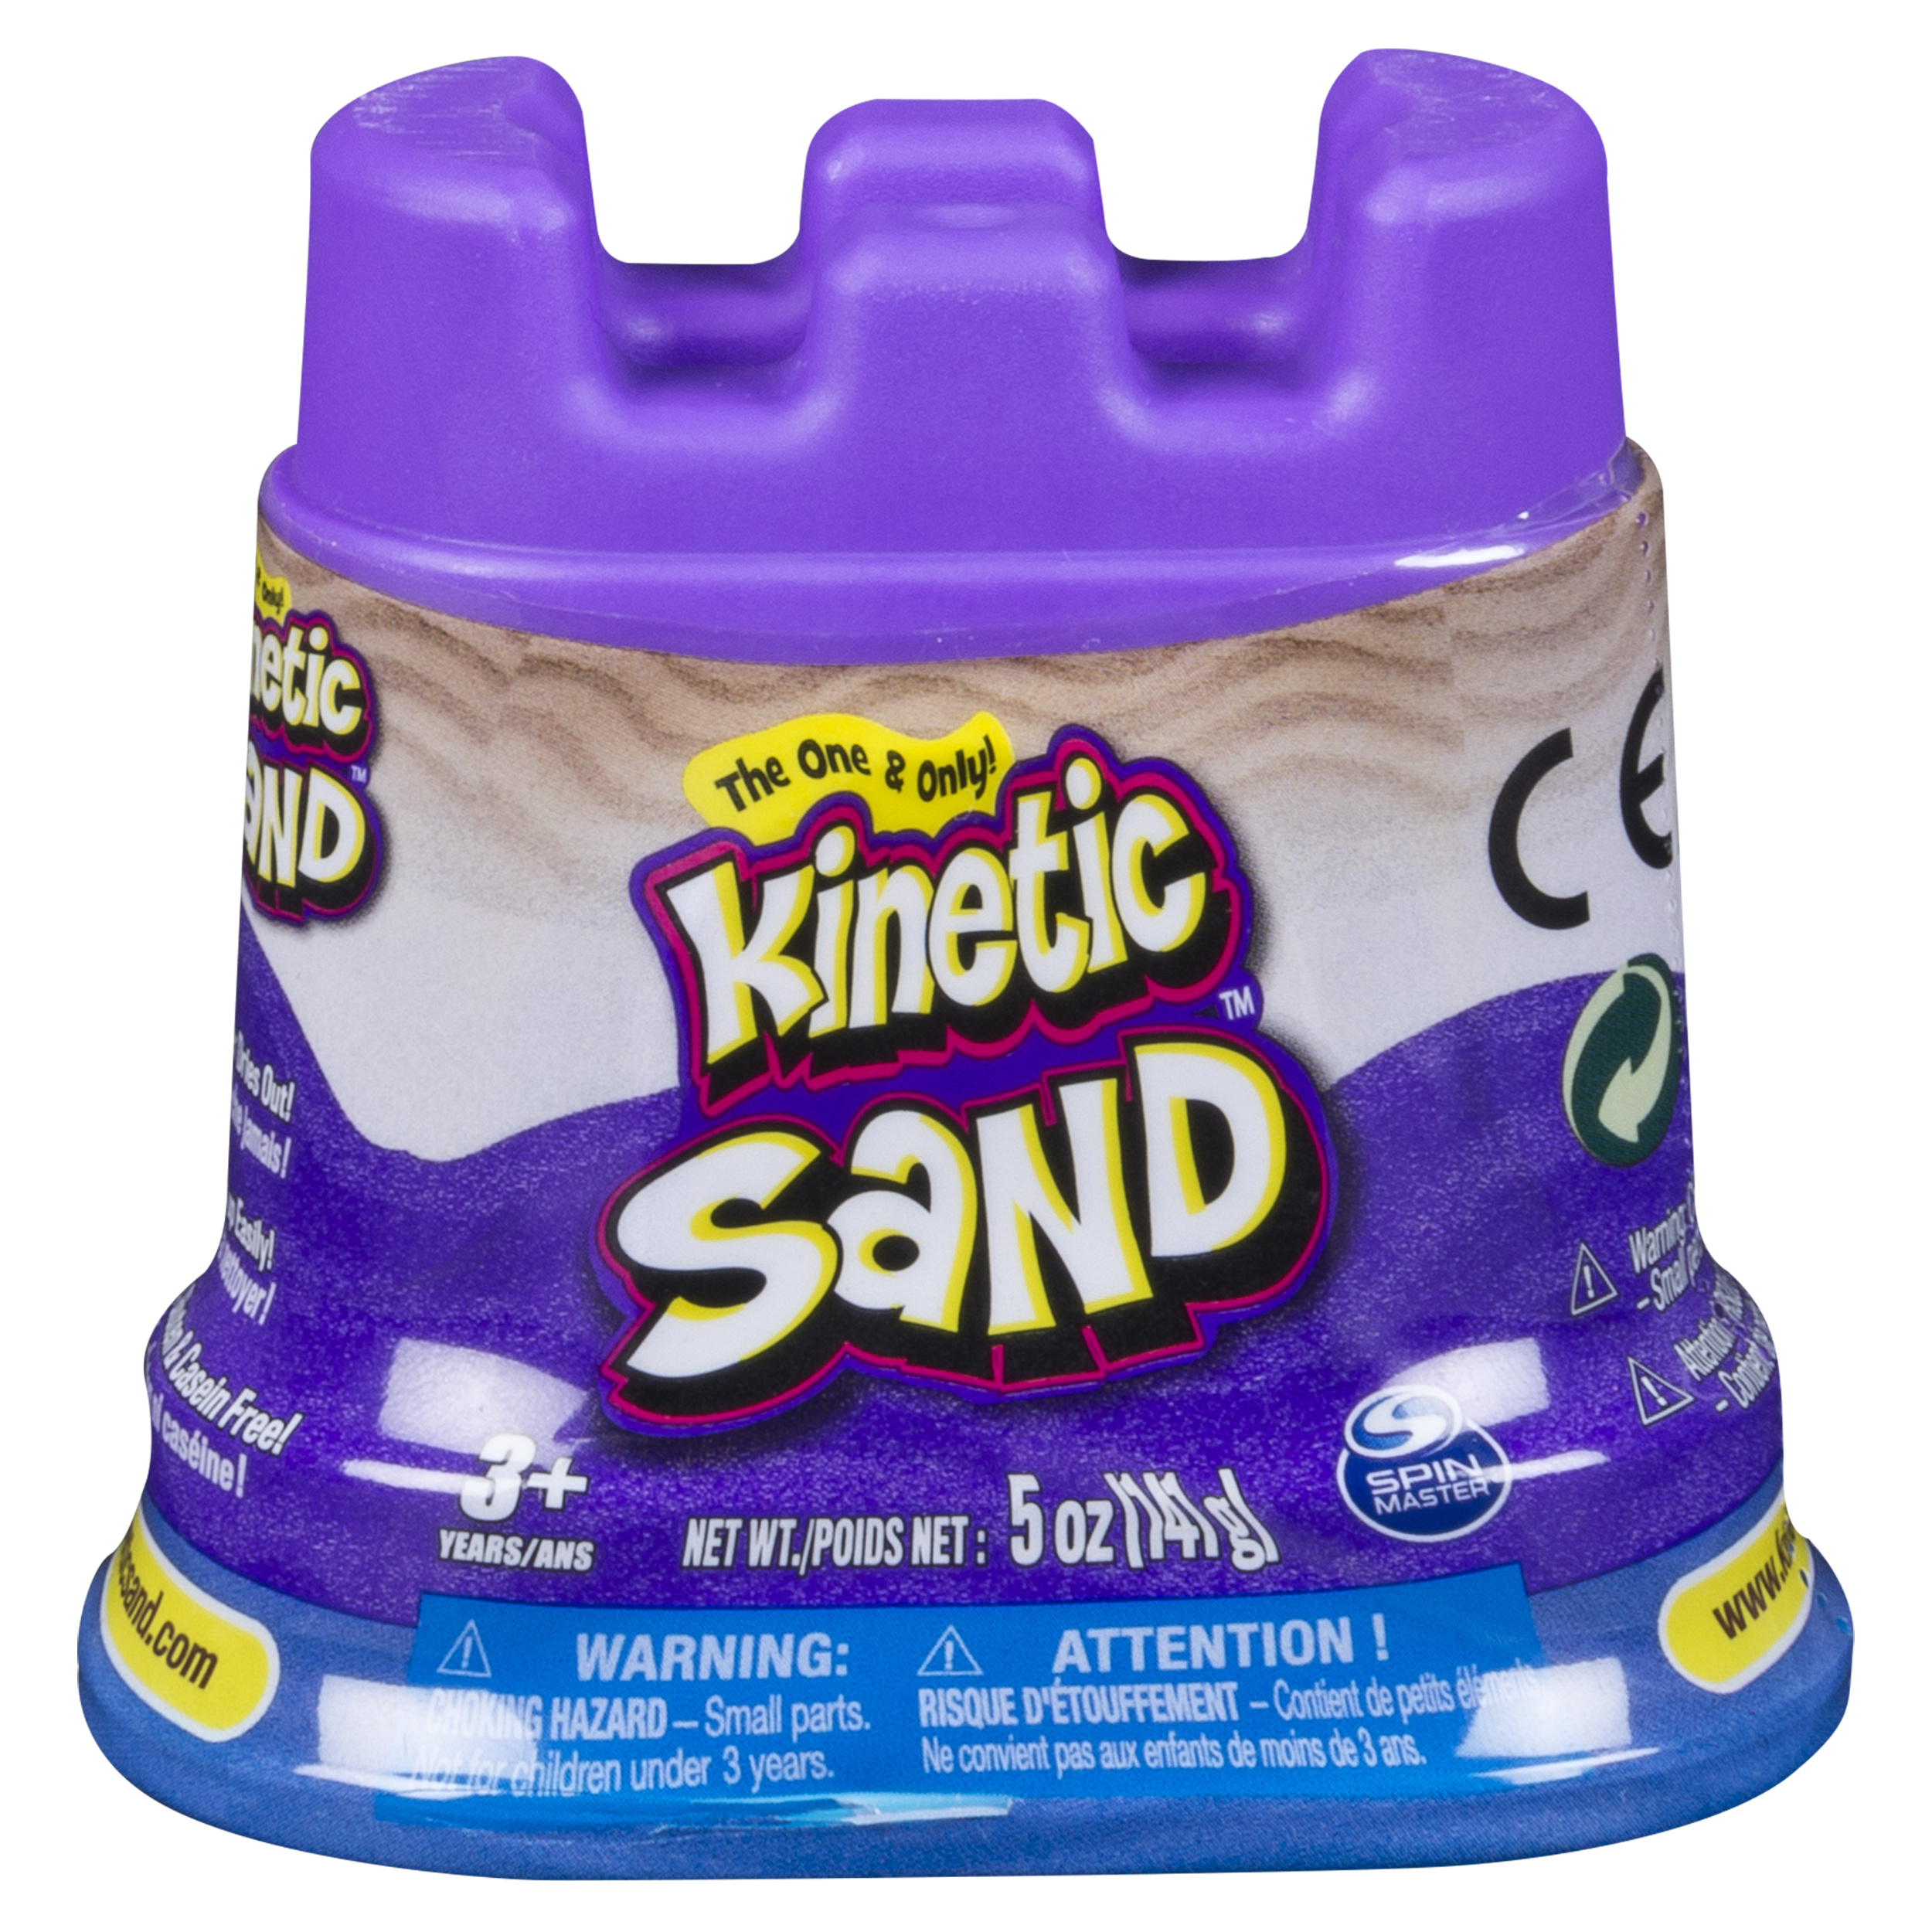 The One & Only Kinetic Sand 5 oz Single Container, Blue